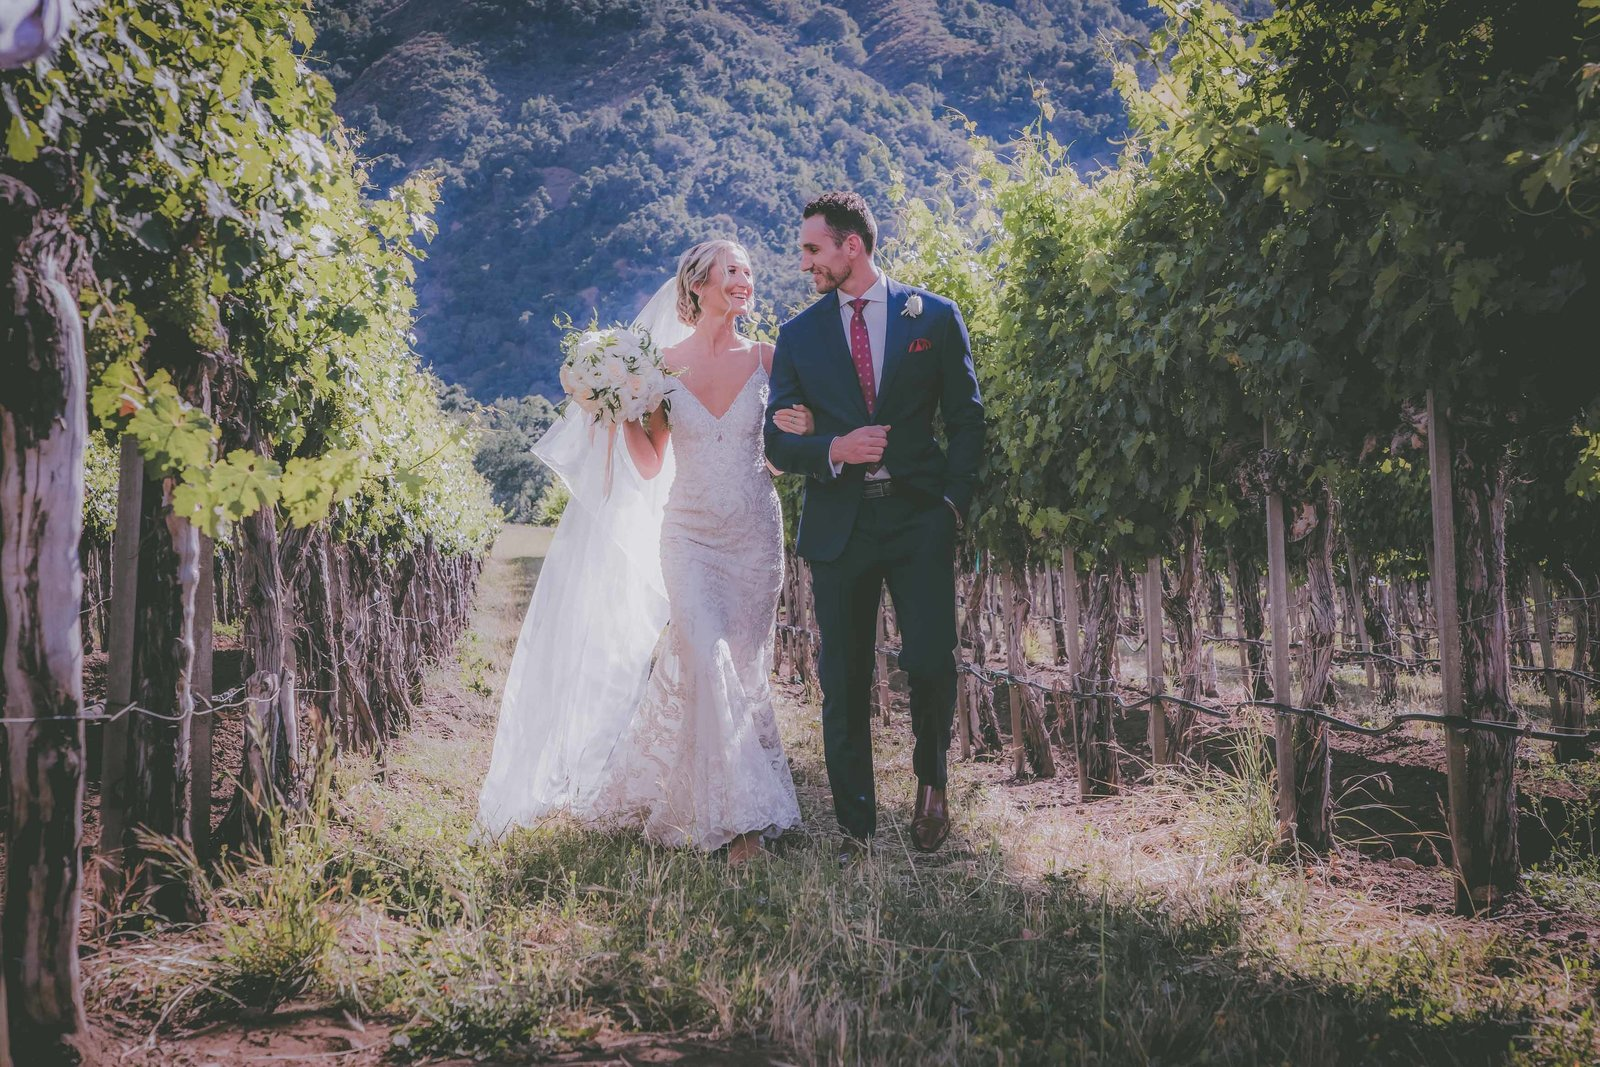 Bride and groom walk and laugh among a Carmel Valley vineyard.